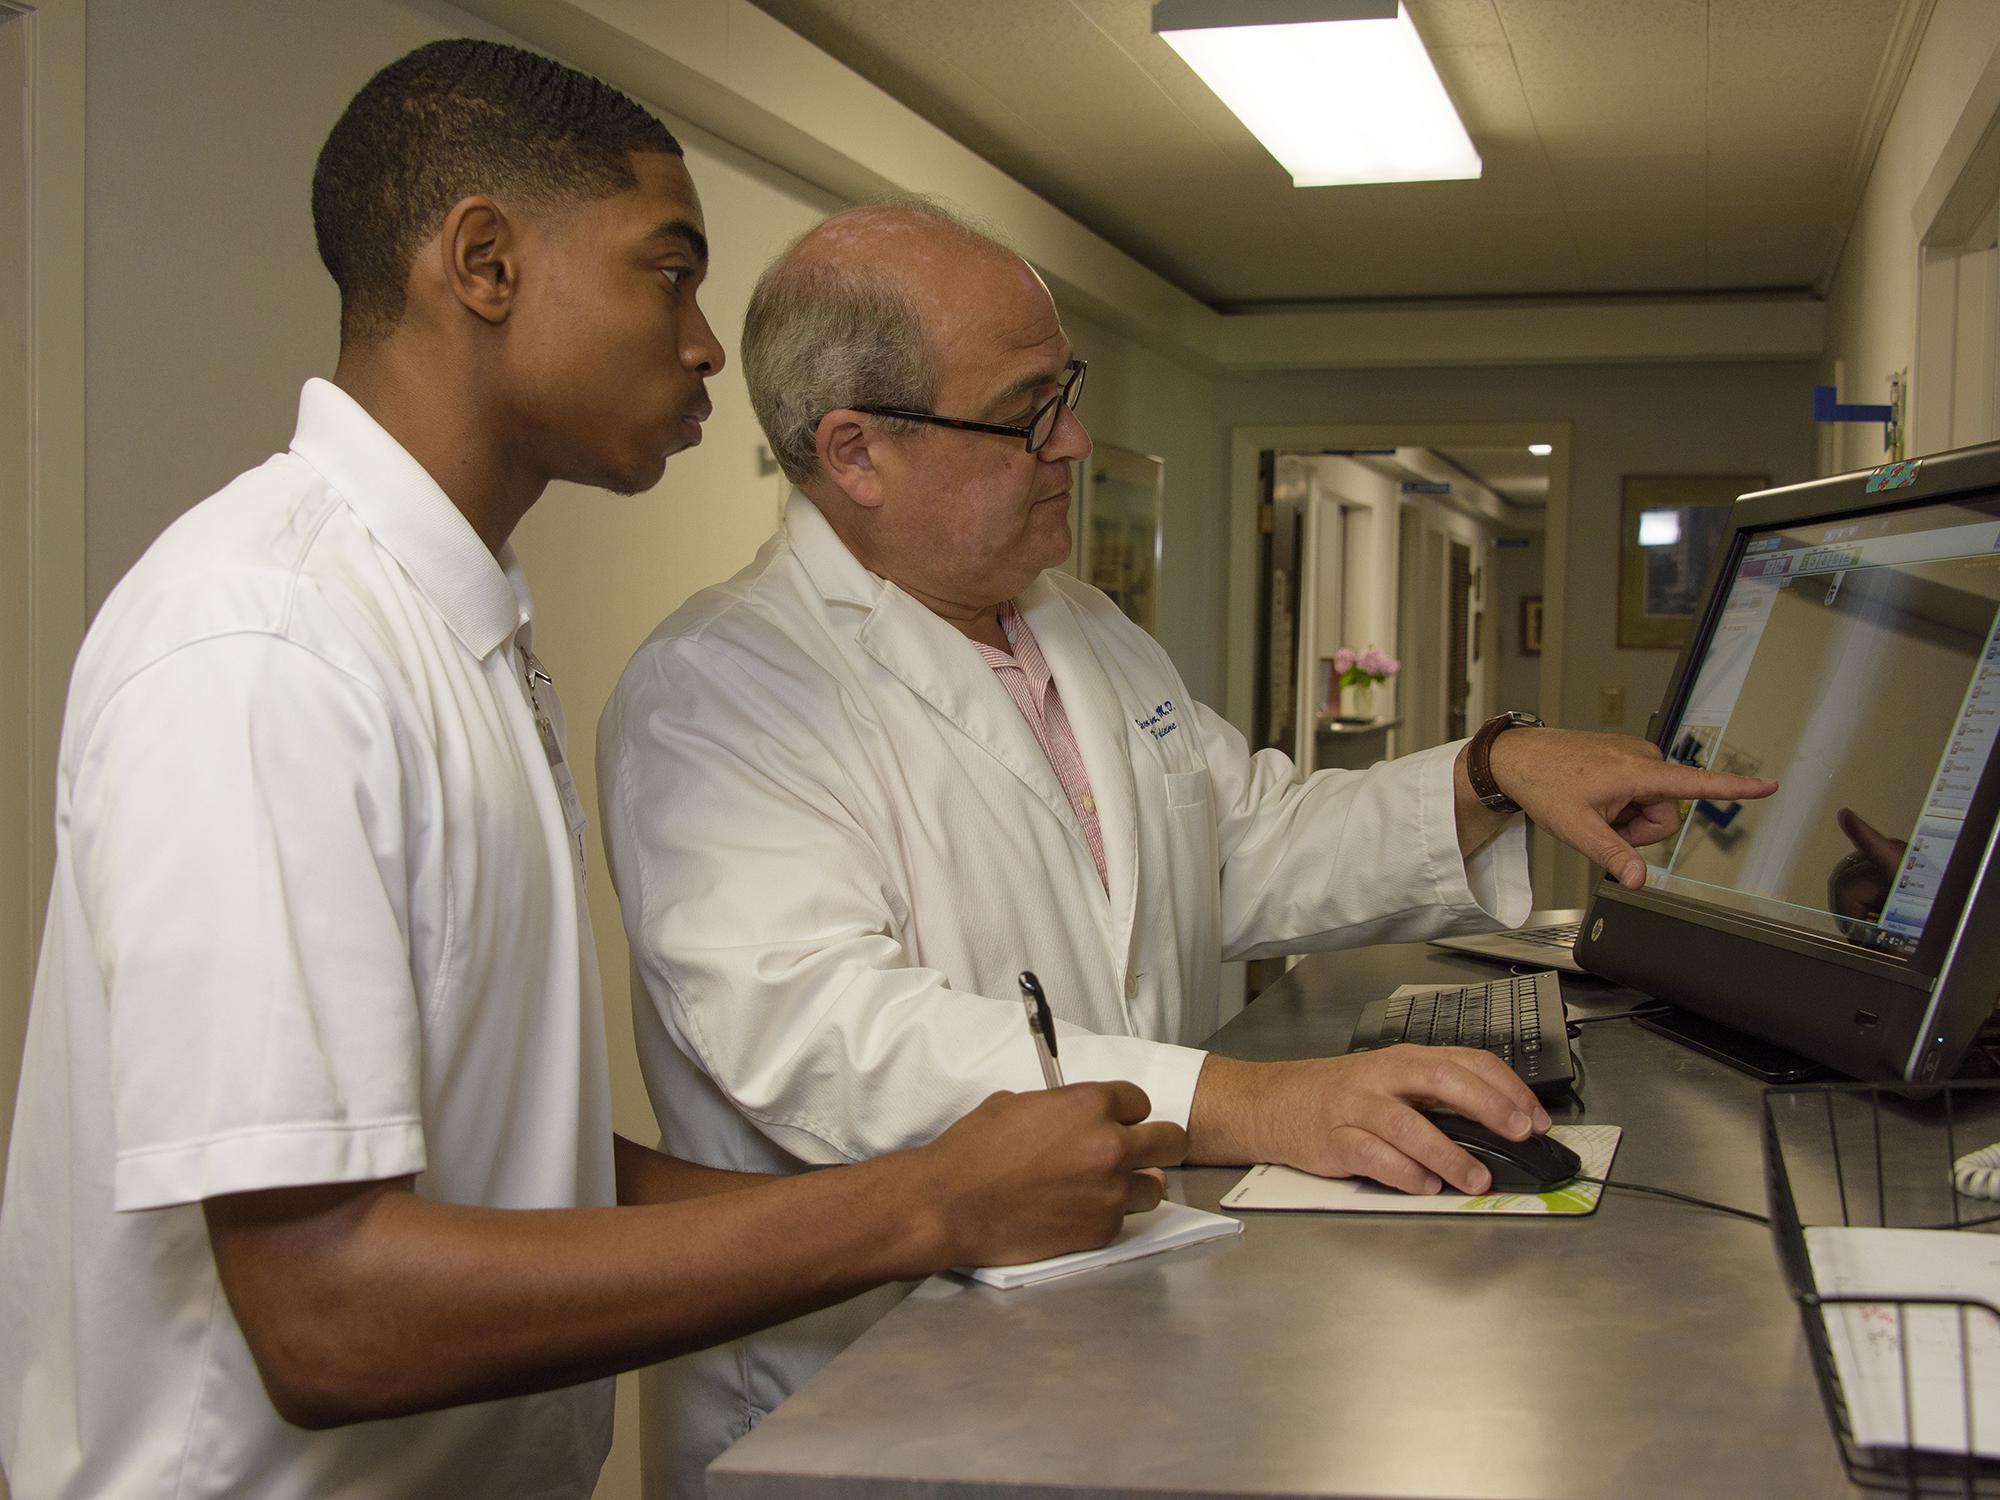 This high school student observes a family practice doctor at work during the 2016 Rural Medical Scholars summer program at Mississippi State University. Applications and program details for 2017 are available online at http://www.extension.msstate.edu/rms/. (Photo by MSU Extension Service/Kevin Hudson)